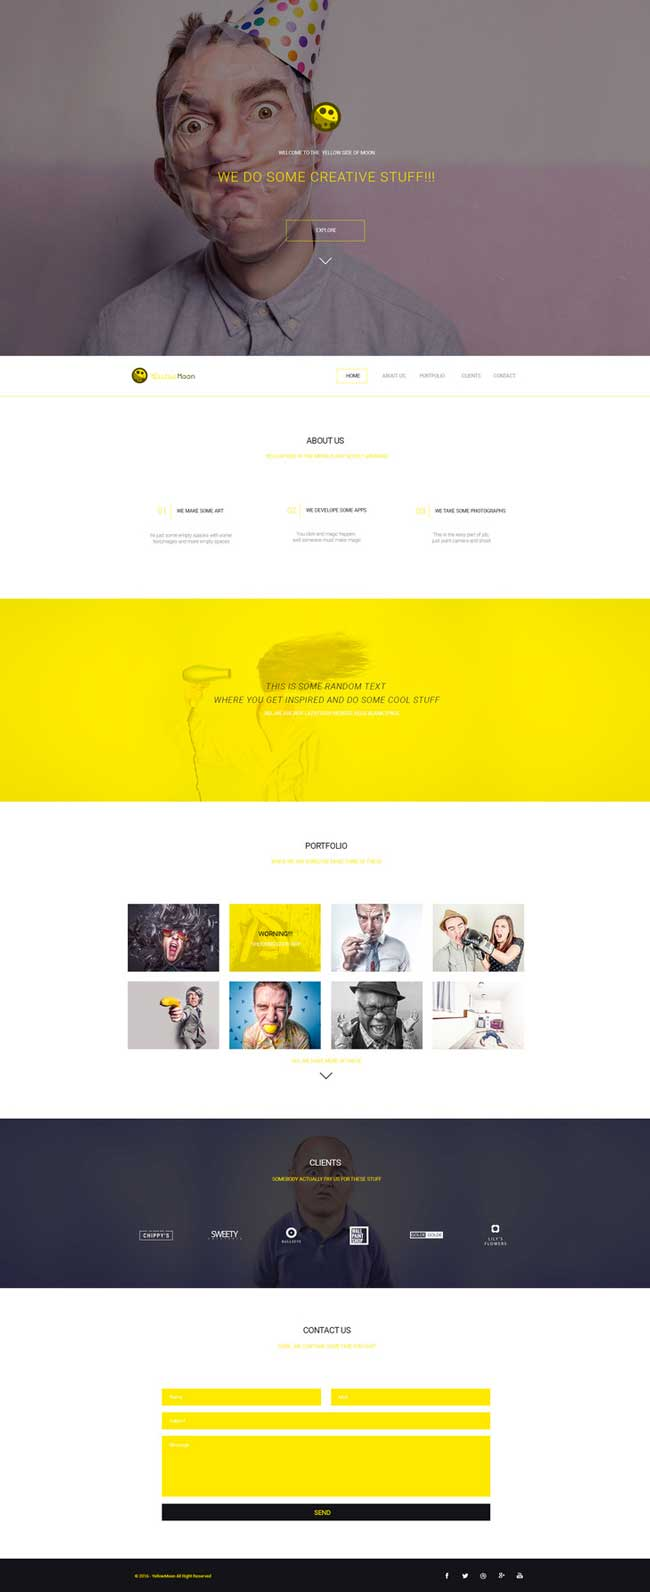 YellowMoon-Free-PSD-Landing-Page-Template-Preview